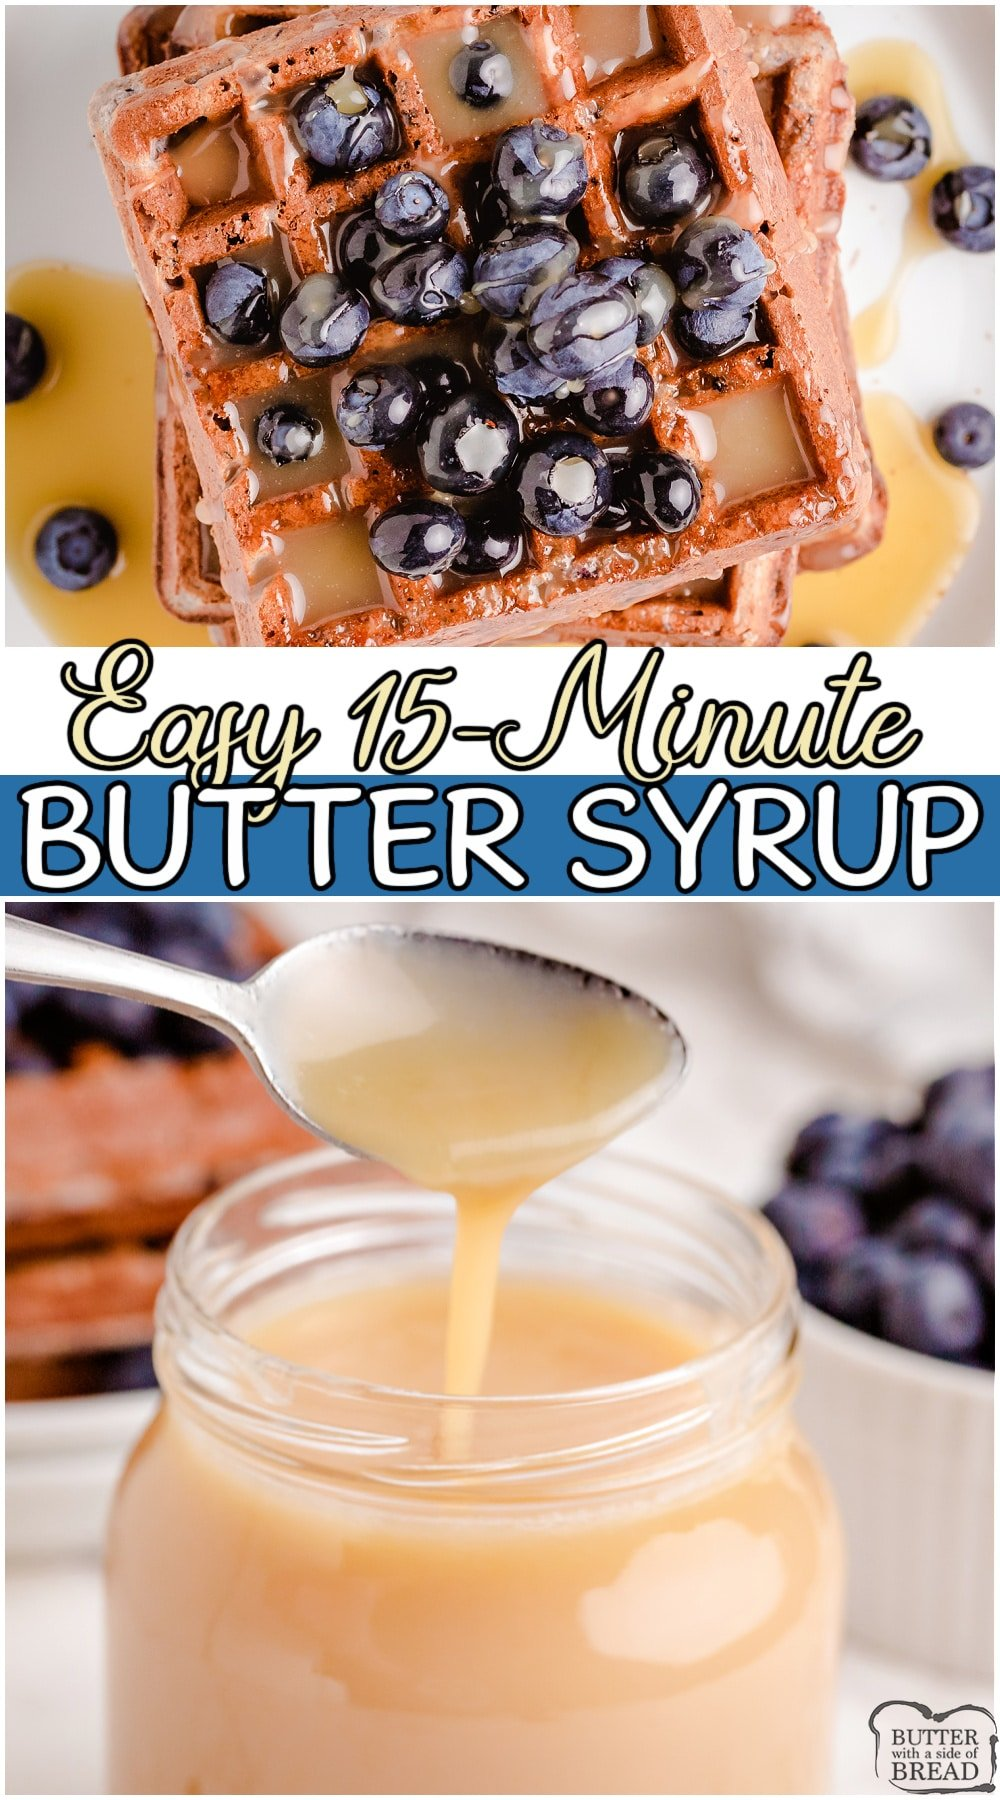 Amazing homemade butter syrup made with butter, sugar, cream & vanilla! Light in color with a delicious caramel-like flavor that is perfect on pancakes, waffles, crepes, etc! #syrup #butter #vanilla #breakfast #easyrecipe from BUTTER WITH A SIDE OF BREAD